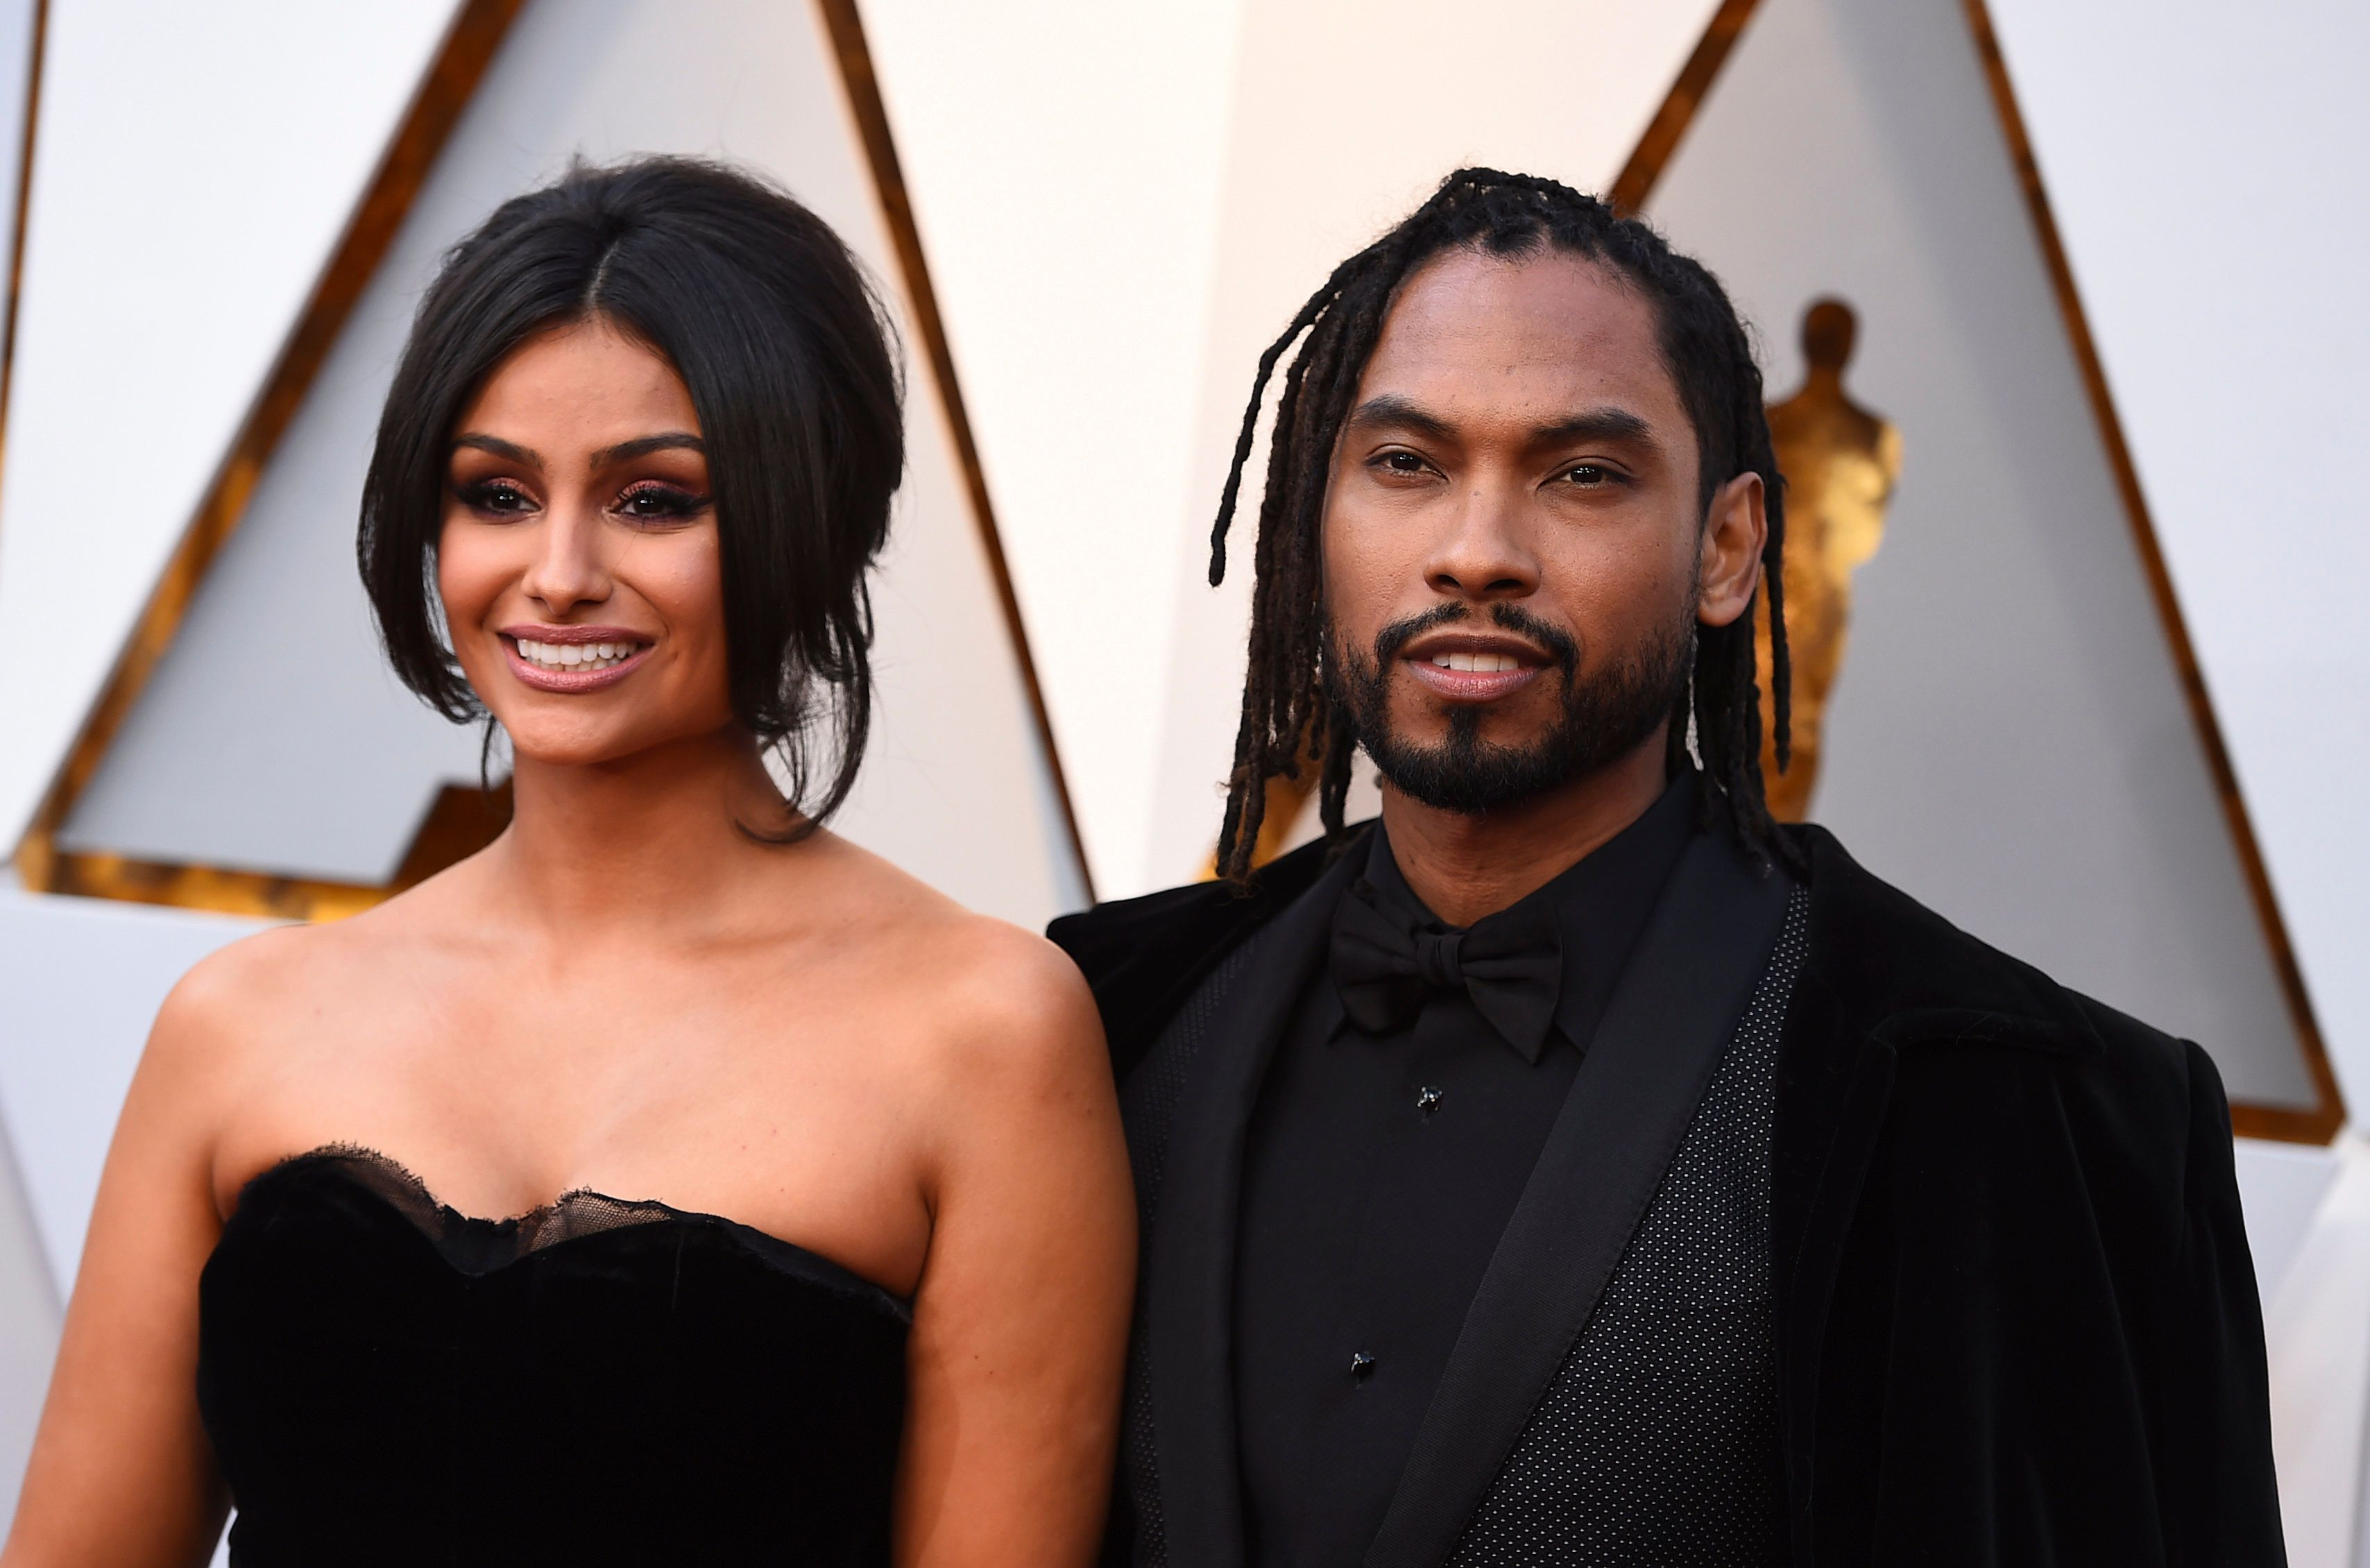 Nazanin Mandi, left, and Miguel arrive at the Oscars on Sunday, March 4, 2018, at the Dolby Theatre in Los Angeles. (Photo by Jordan Strauss/Invision/AP)